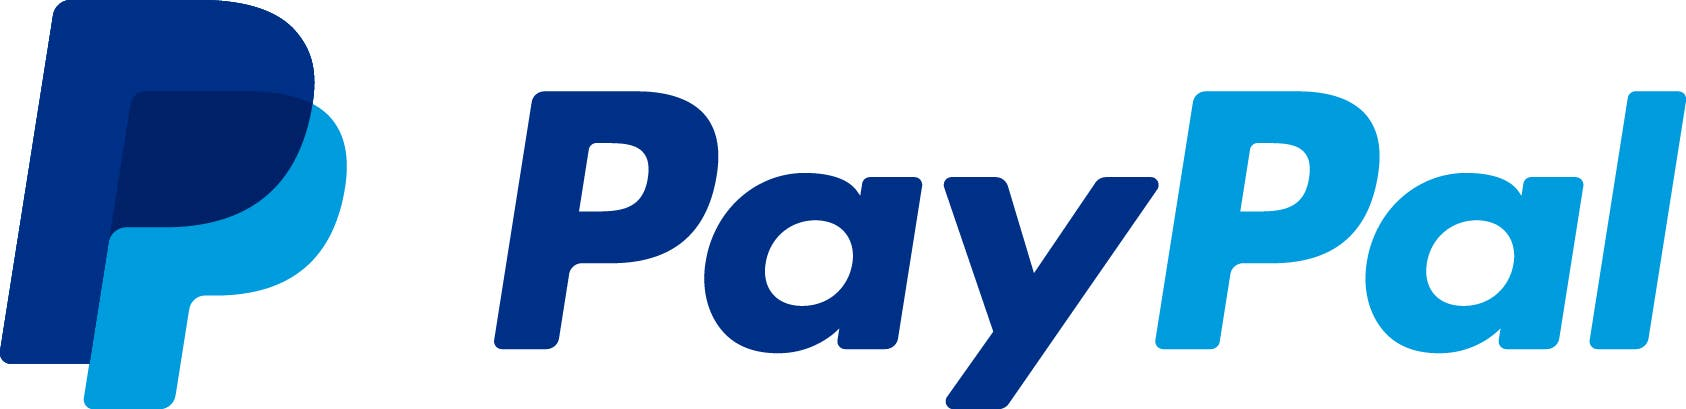 Media Resources Paypal Stories